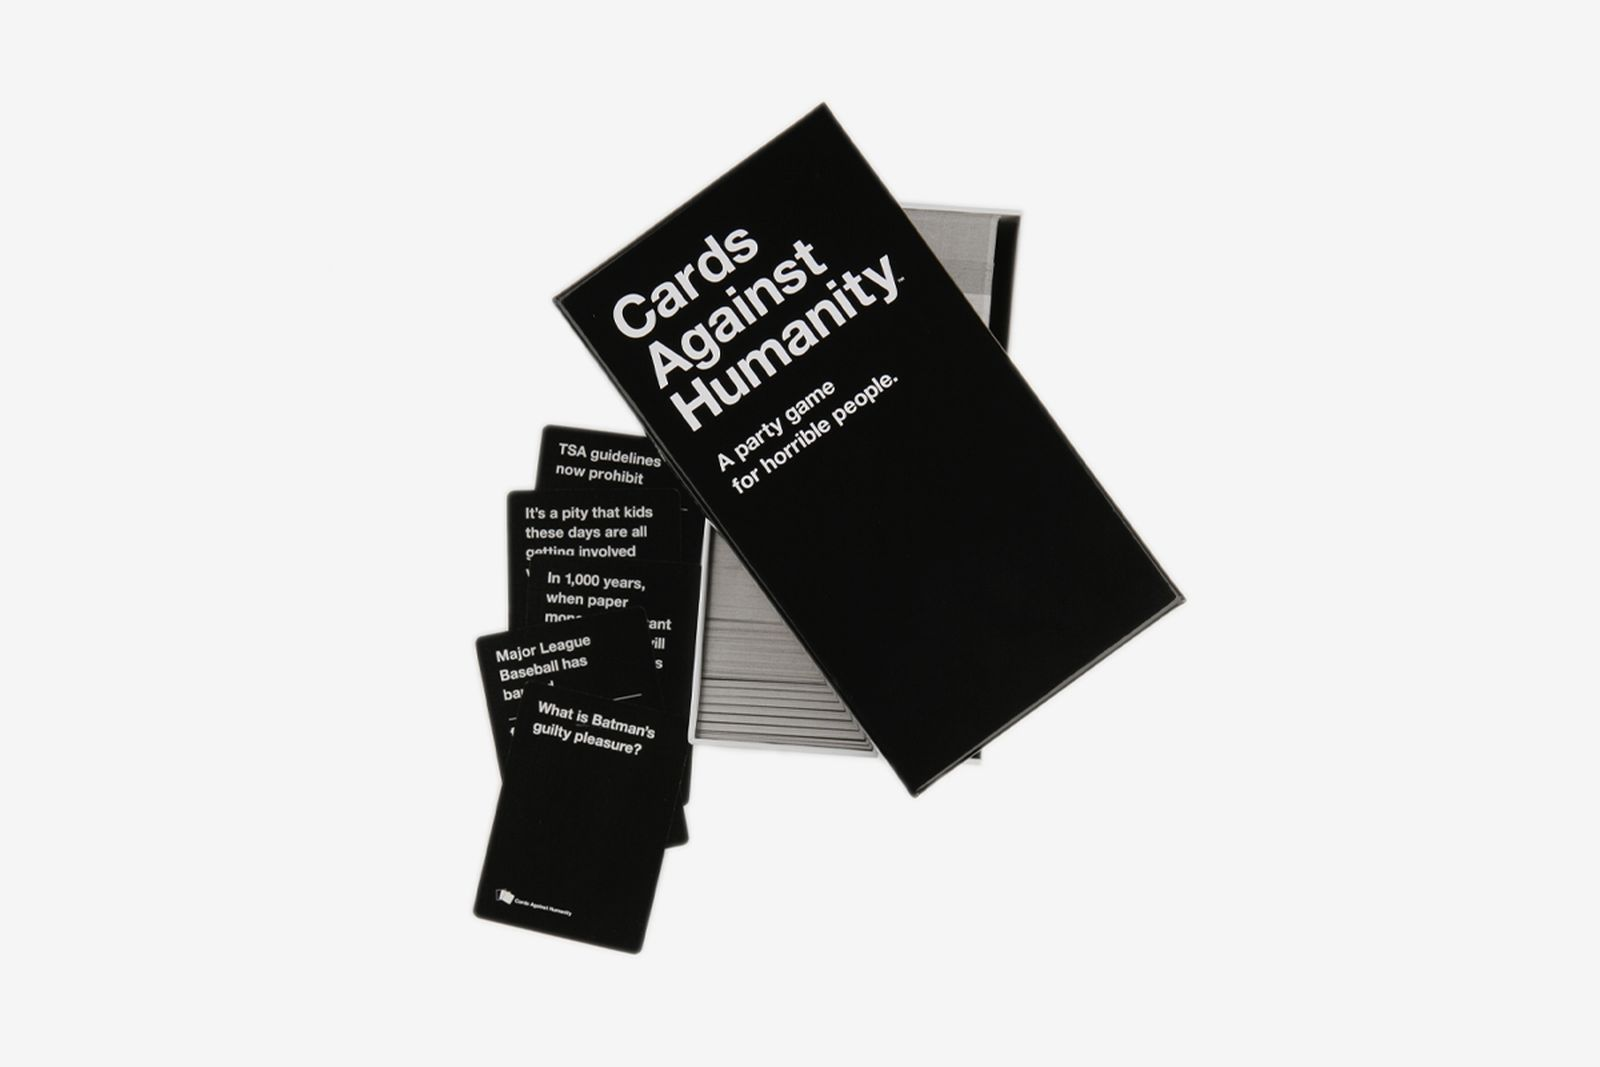 cards-against-humanity-play-online-free-01-main